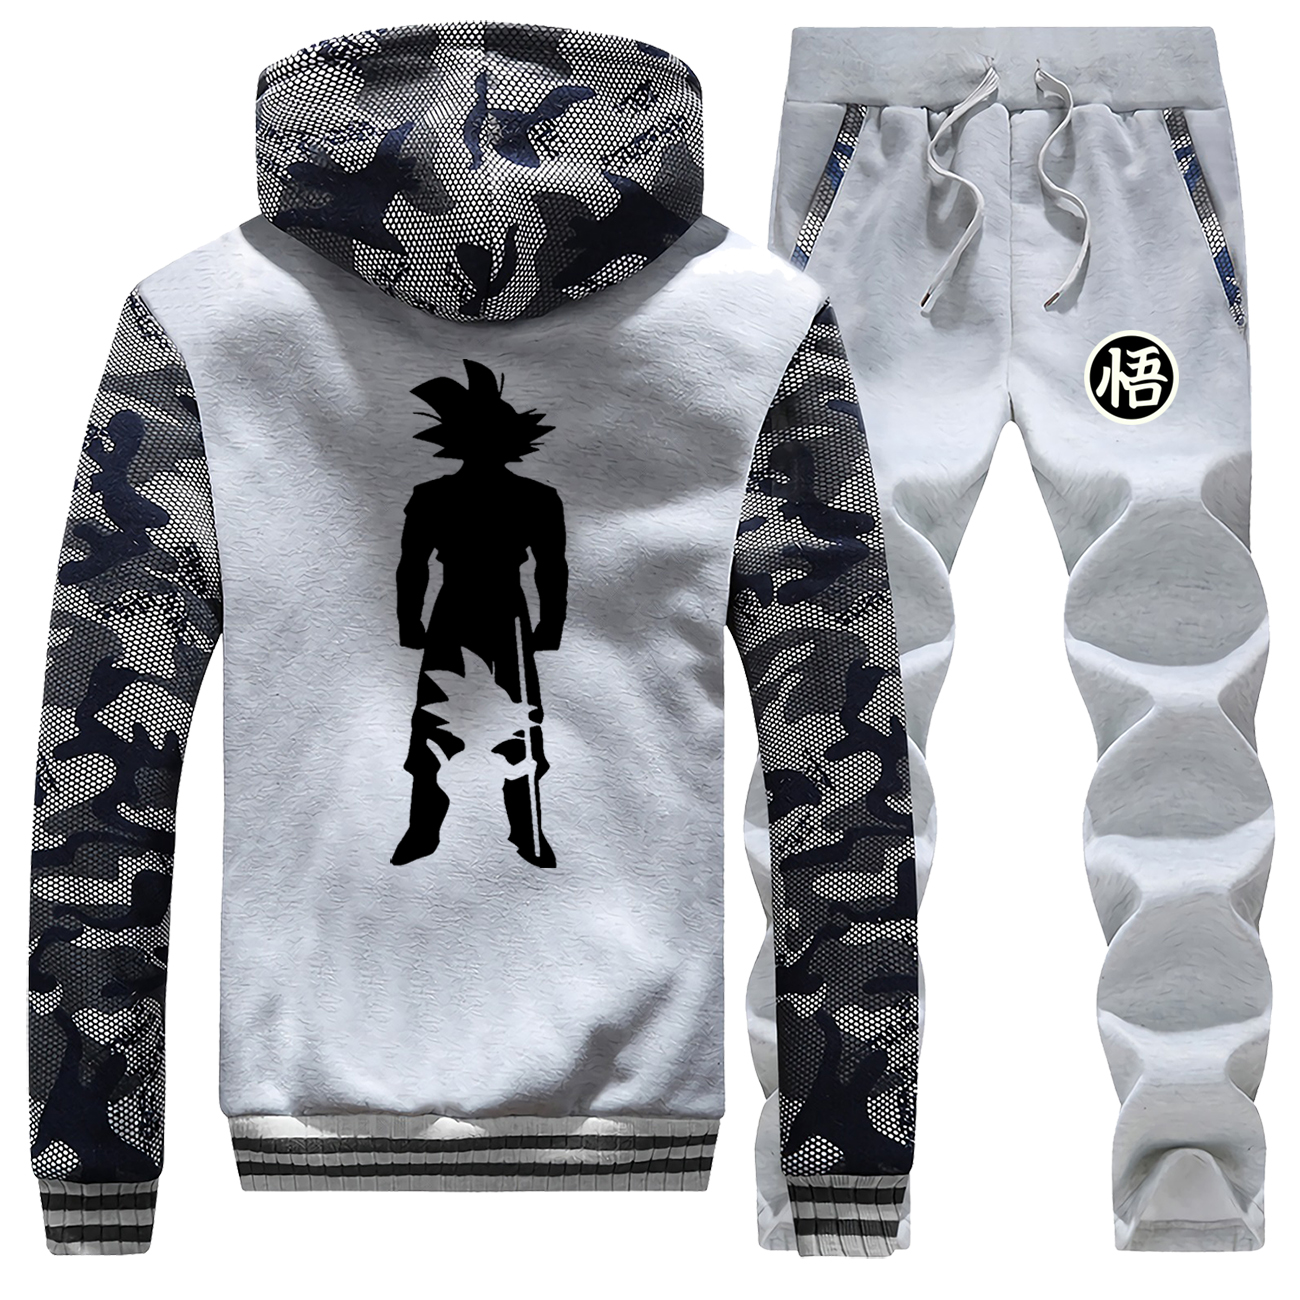 Japanese Anime Winter Camo Sets Dragon Ball Z Male Set Fleece Warm Jackets Harajuku Winter Zipper Coat Comfortable Tracksuit